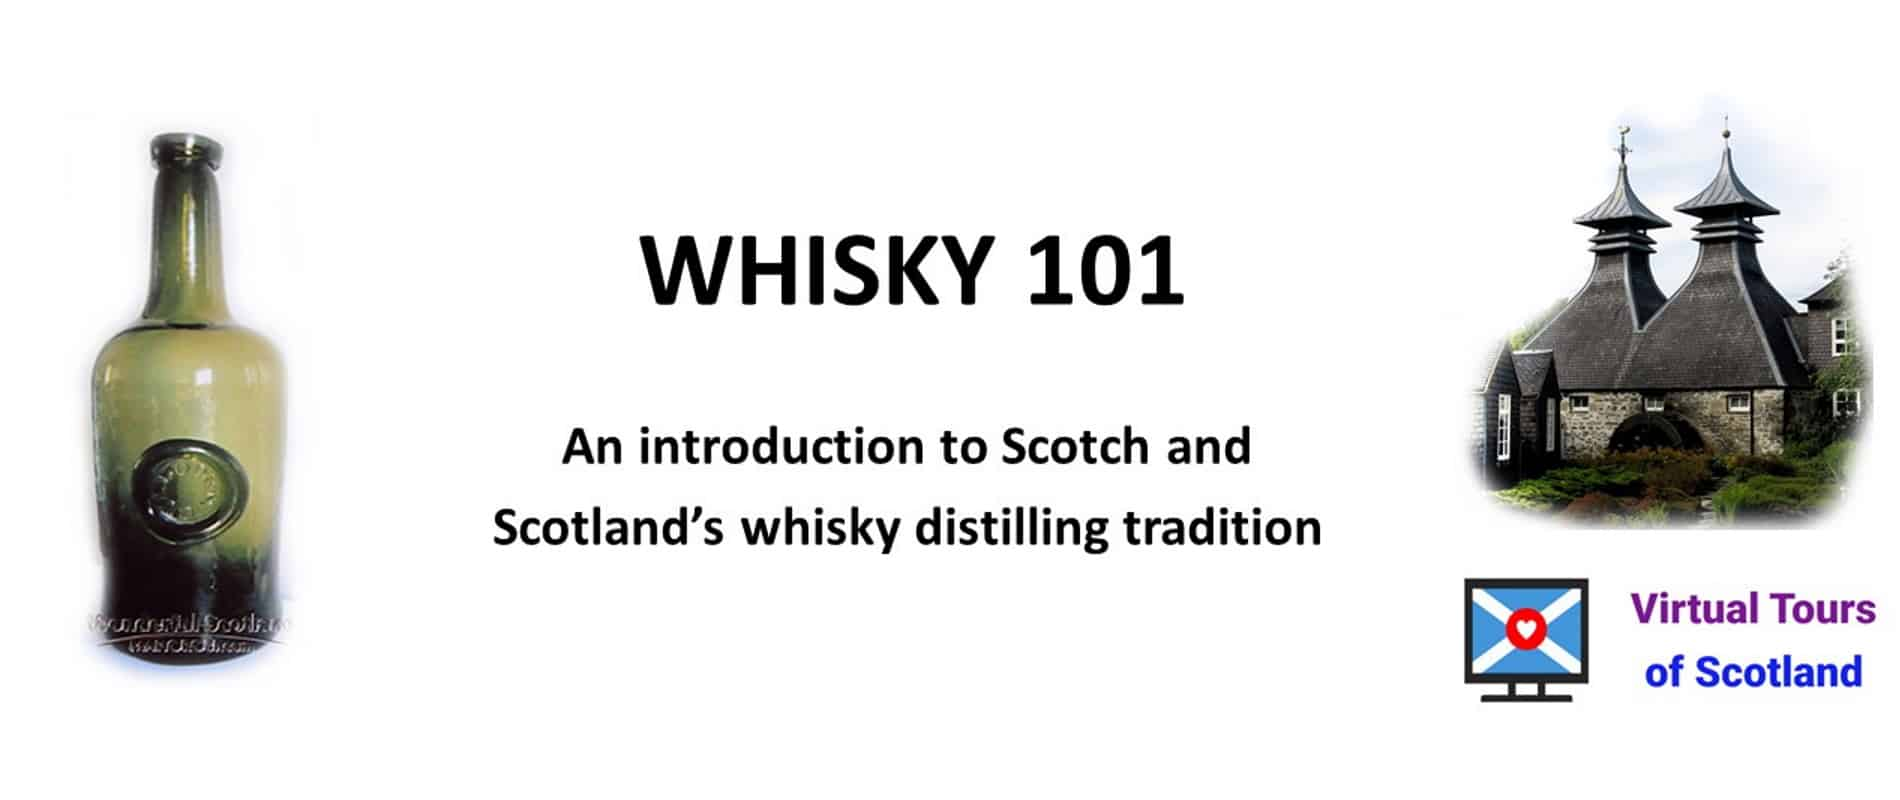 Whisky 101 - An Introduction to Scotch Whisky